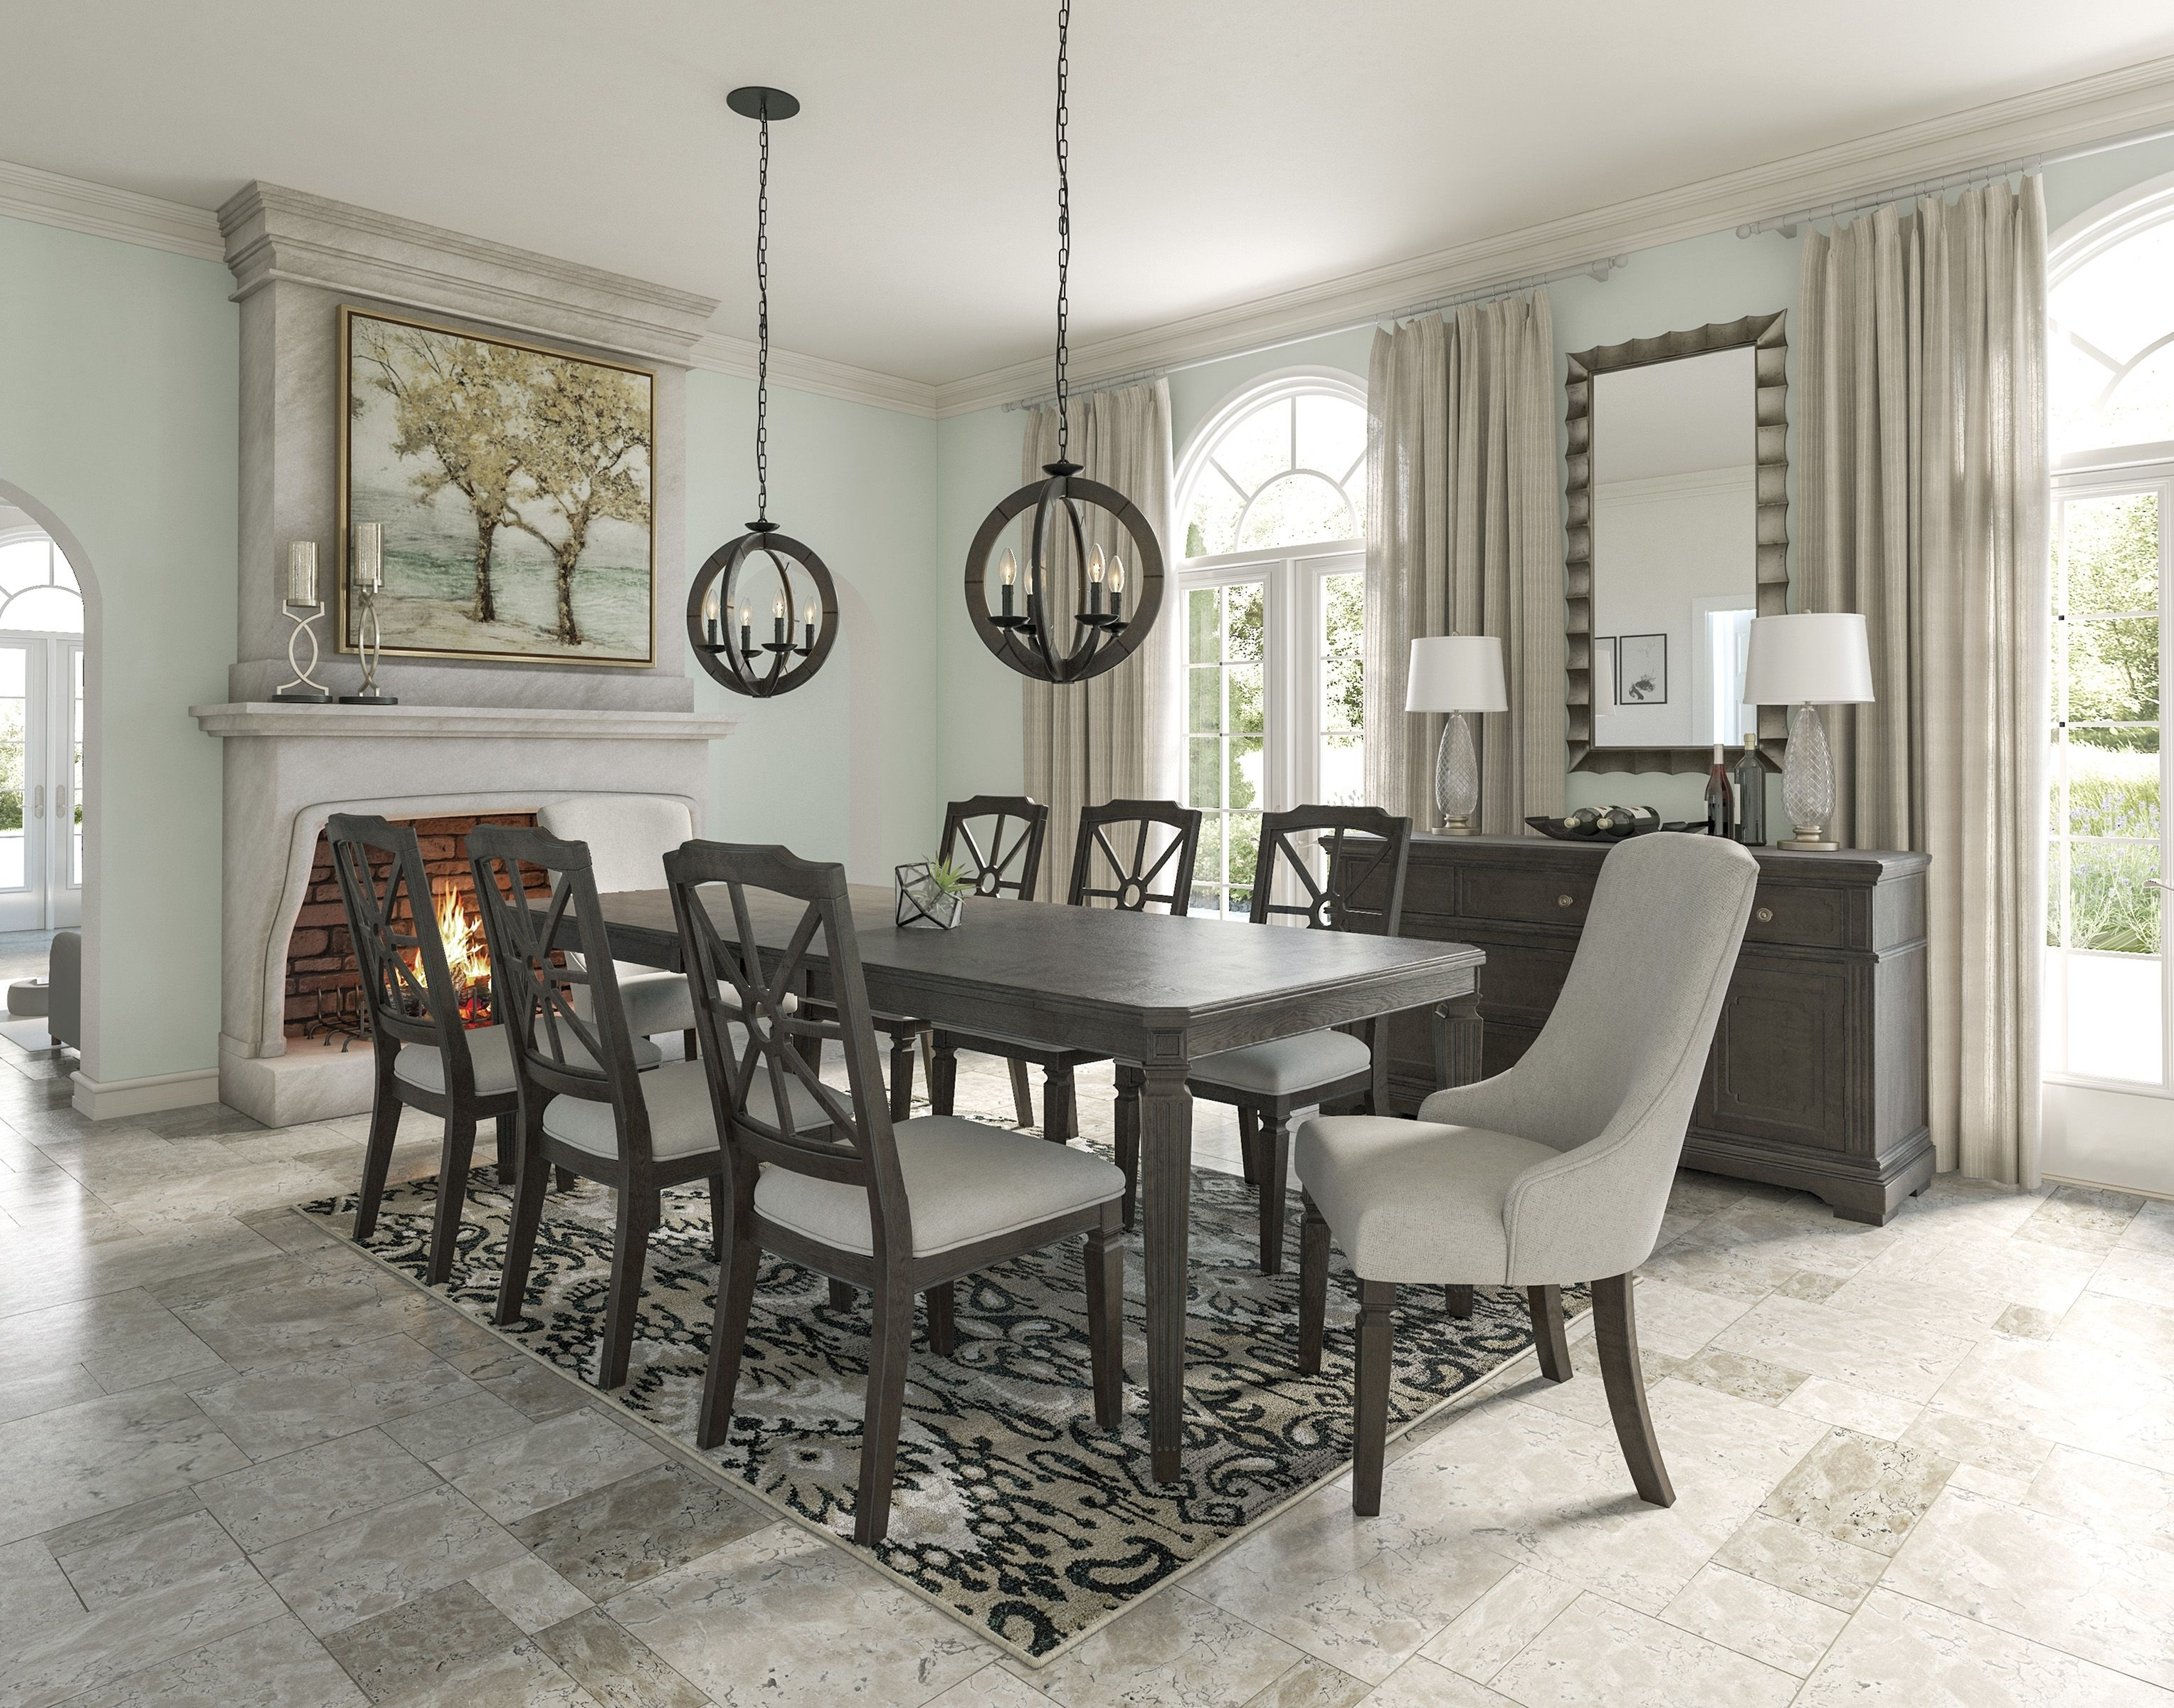 Dining Room Suites Pertaining To 2017 Mikalene 5 Piece Dining Room (View 22 of 25)